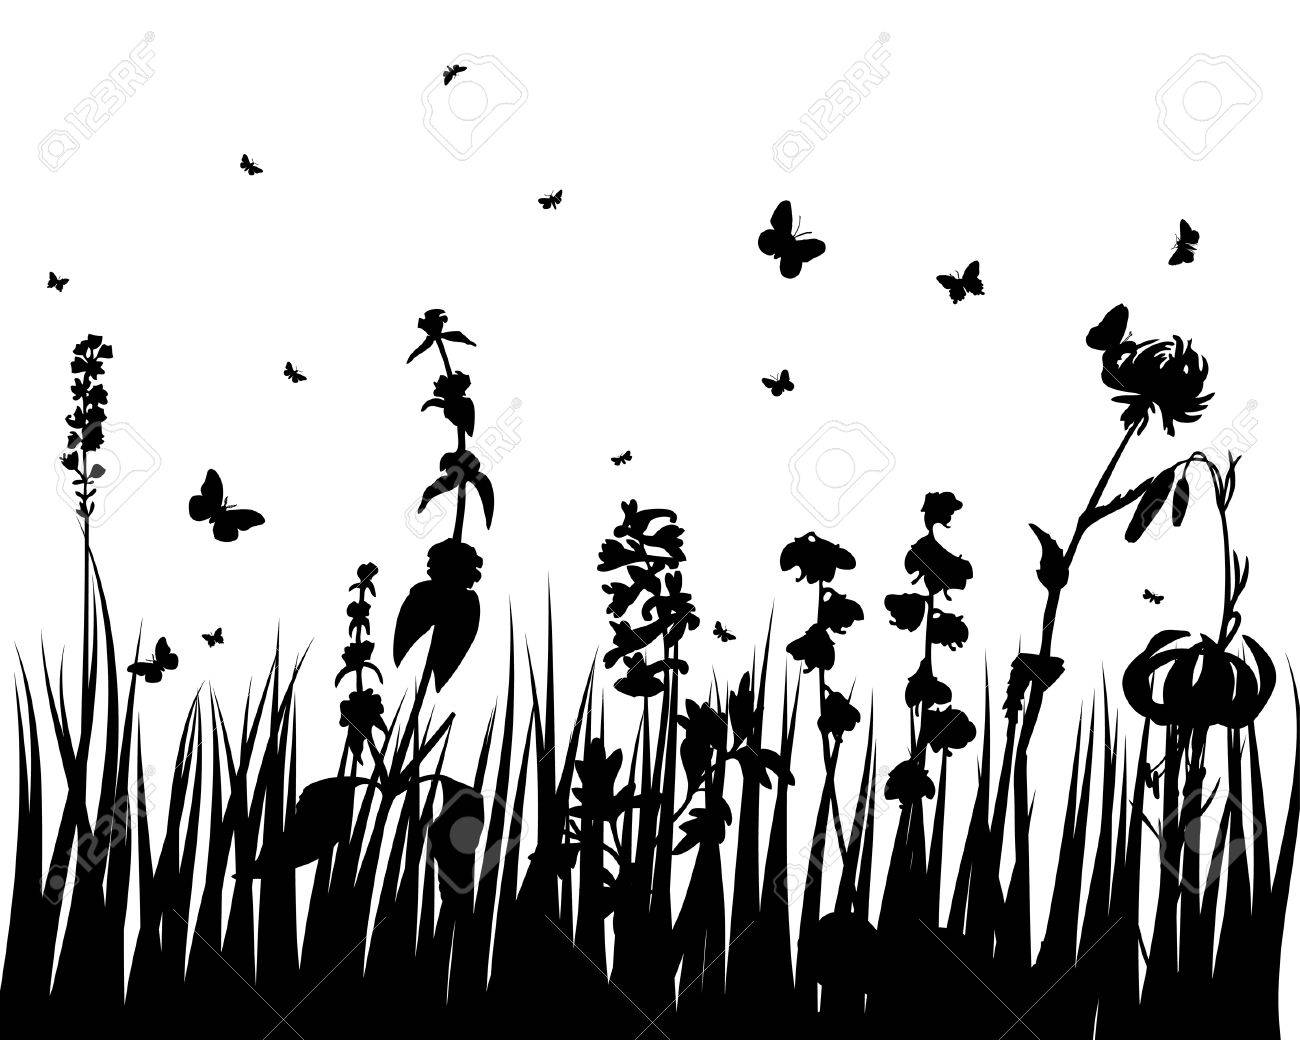 Vector grass silhouettes backgrounds with insects Stock Vector - 4455233